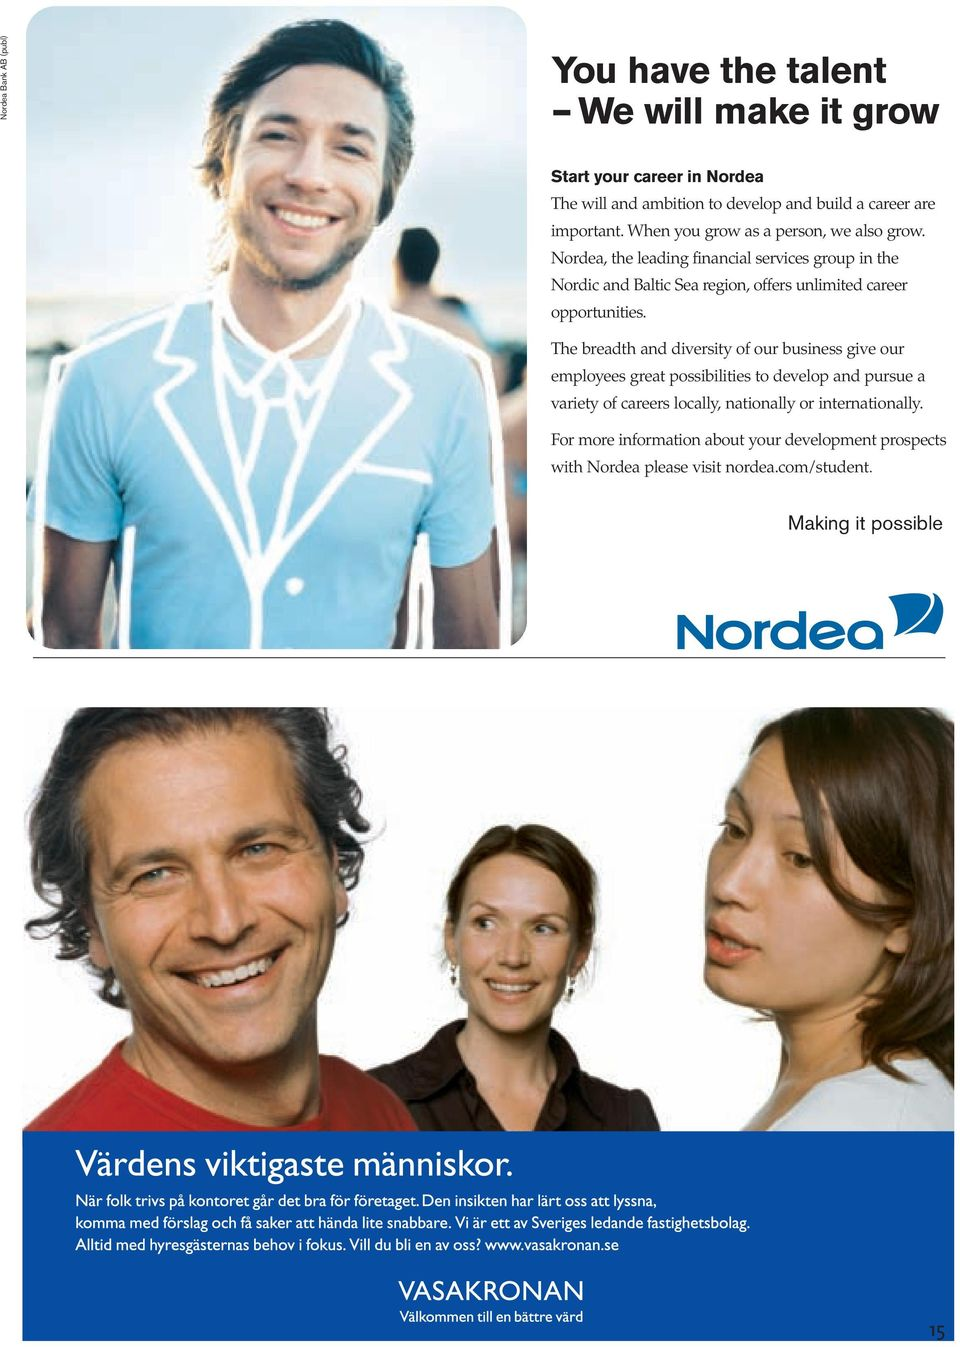 Nordea, the leading financial services group in the Nordic and Baltic Sea region, offers unlimited career opportunities.